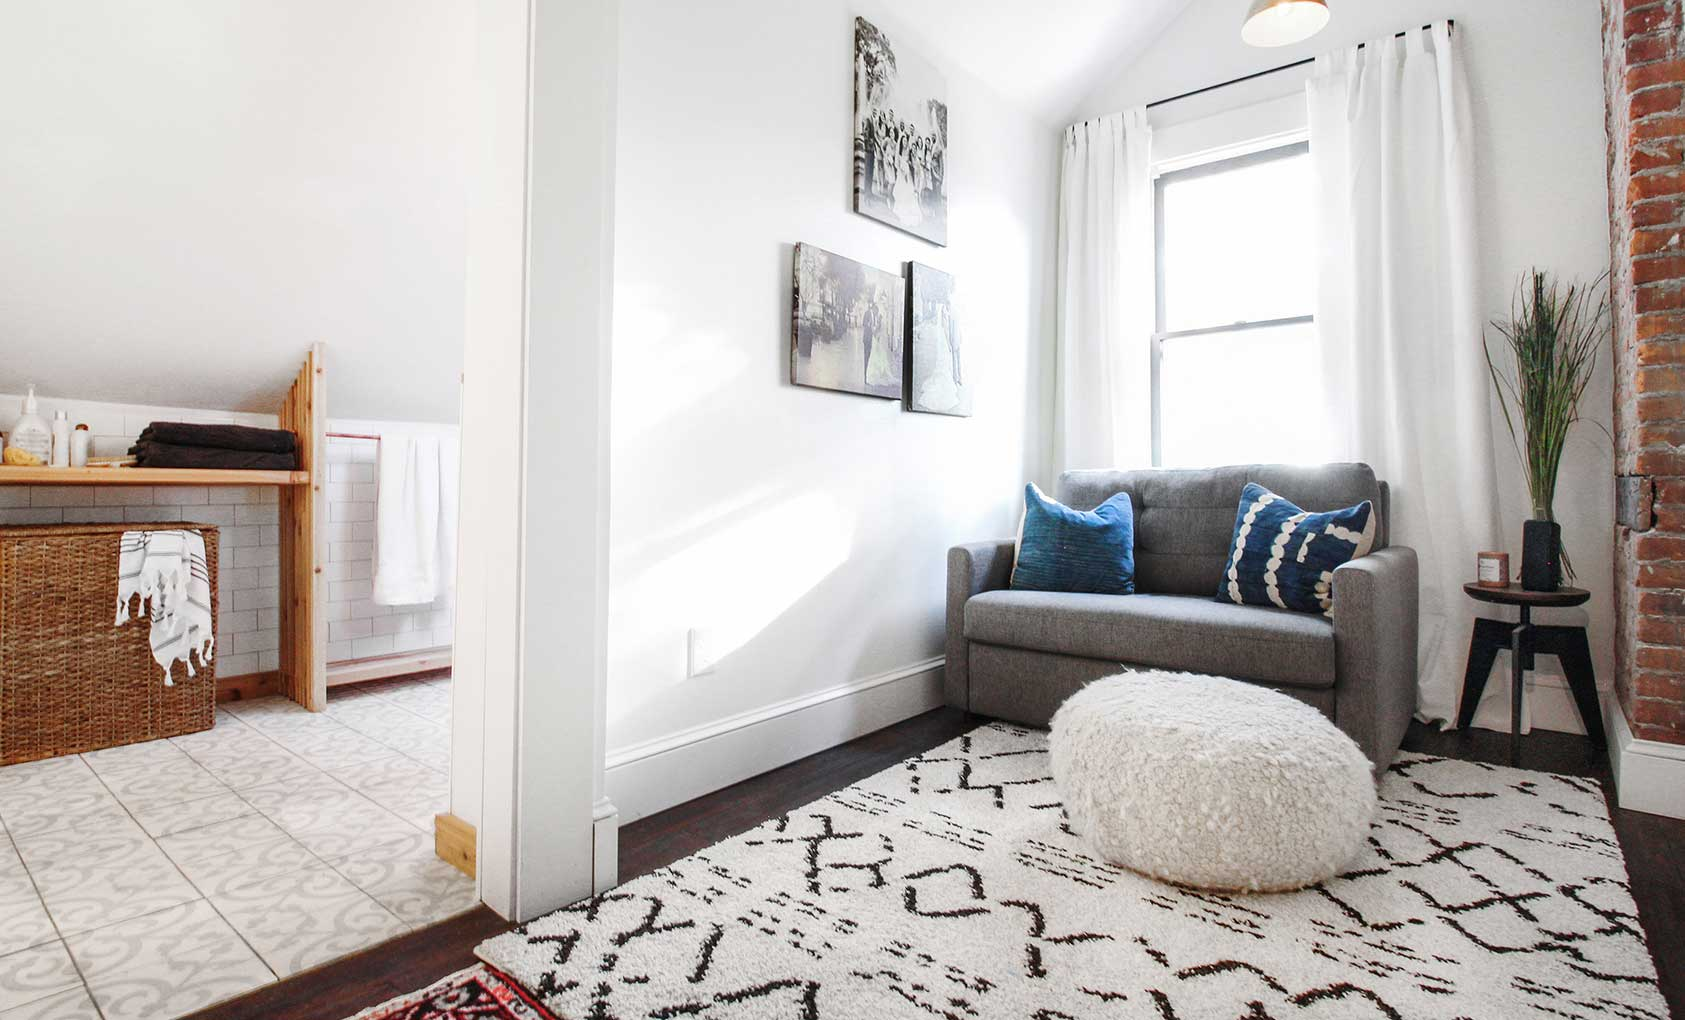 Before & After: A Sunny Guest Suite Basically From Scratch, Design*Sponge